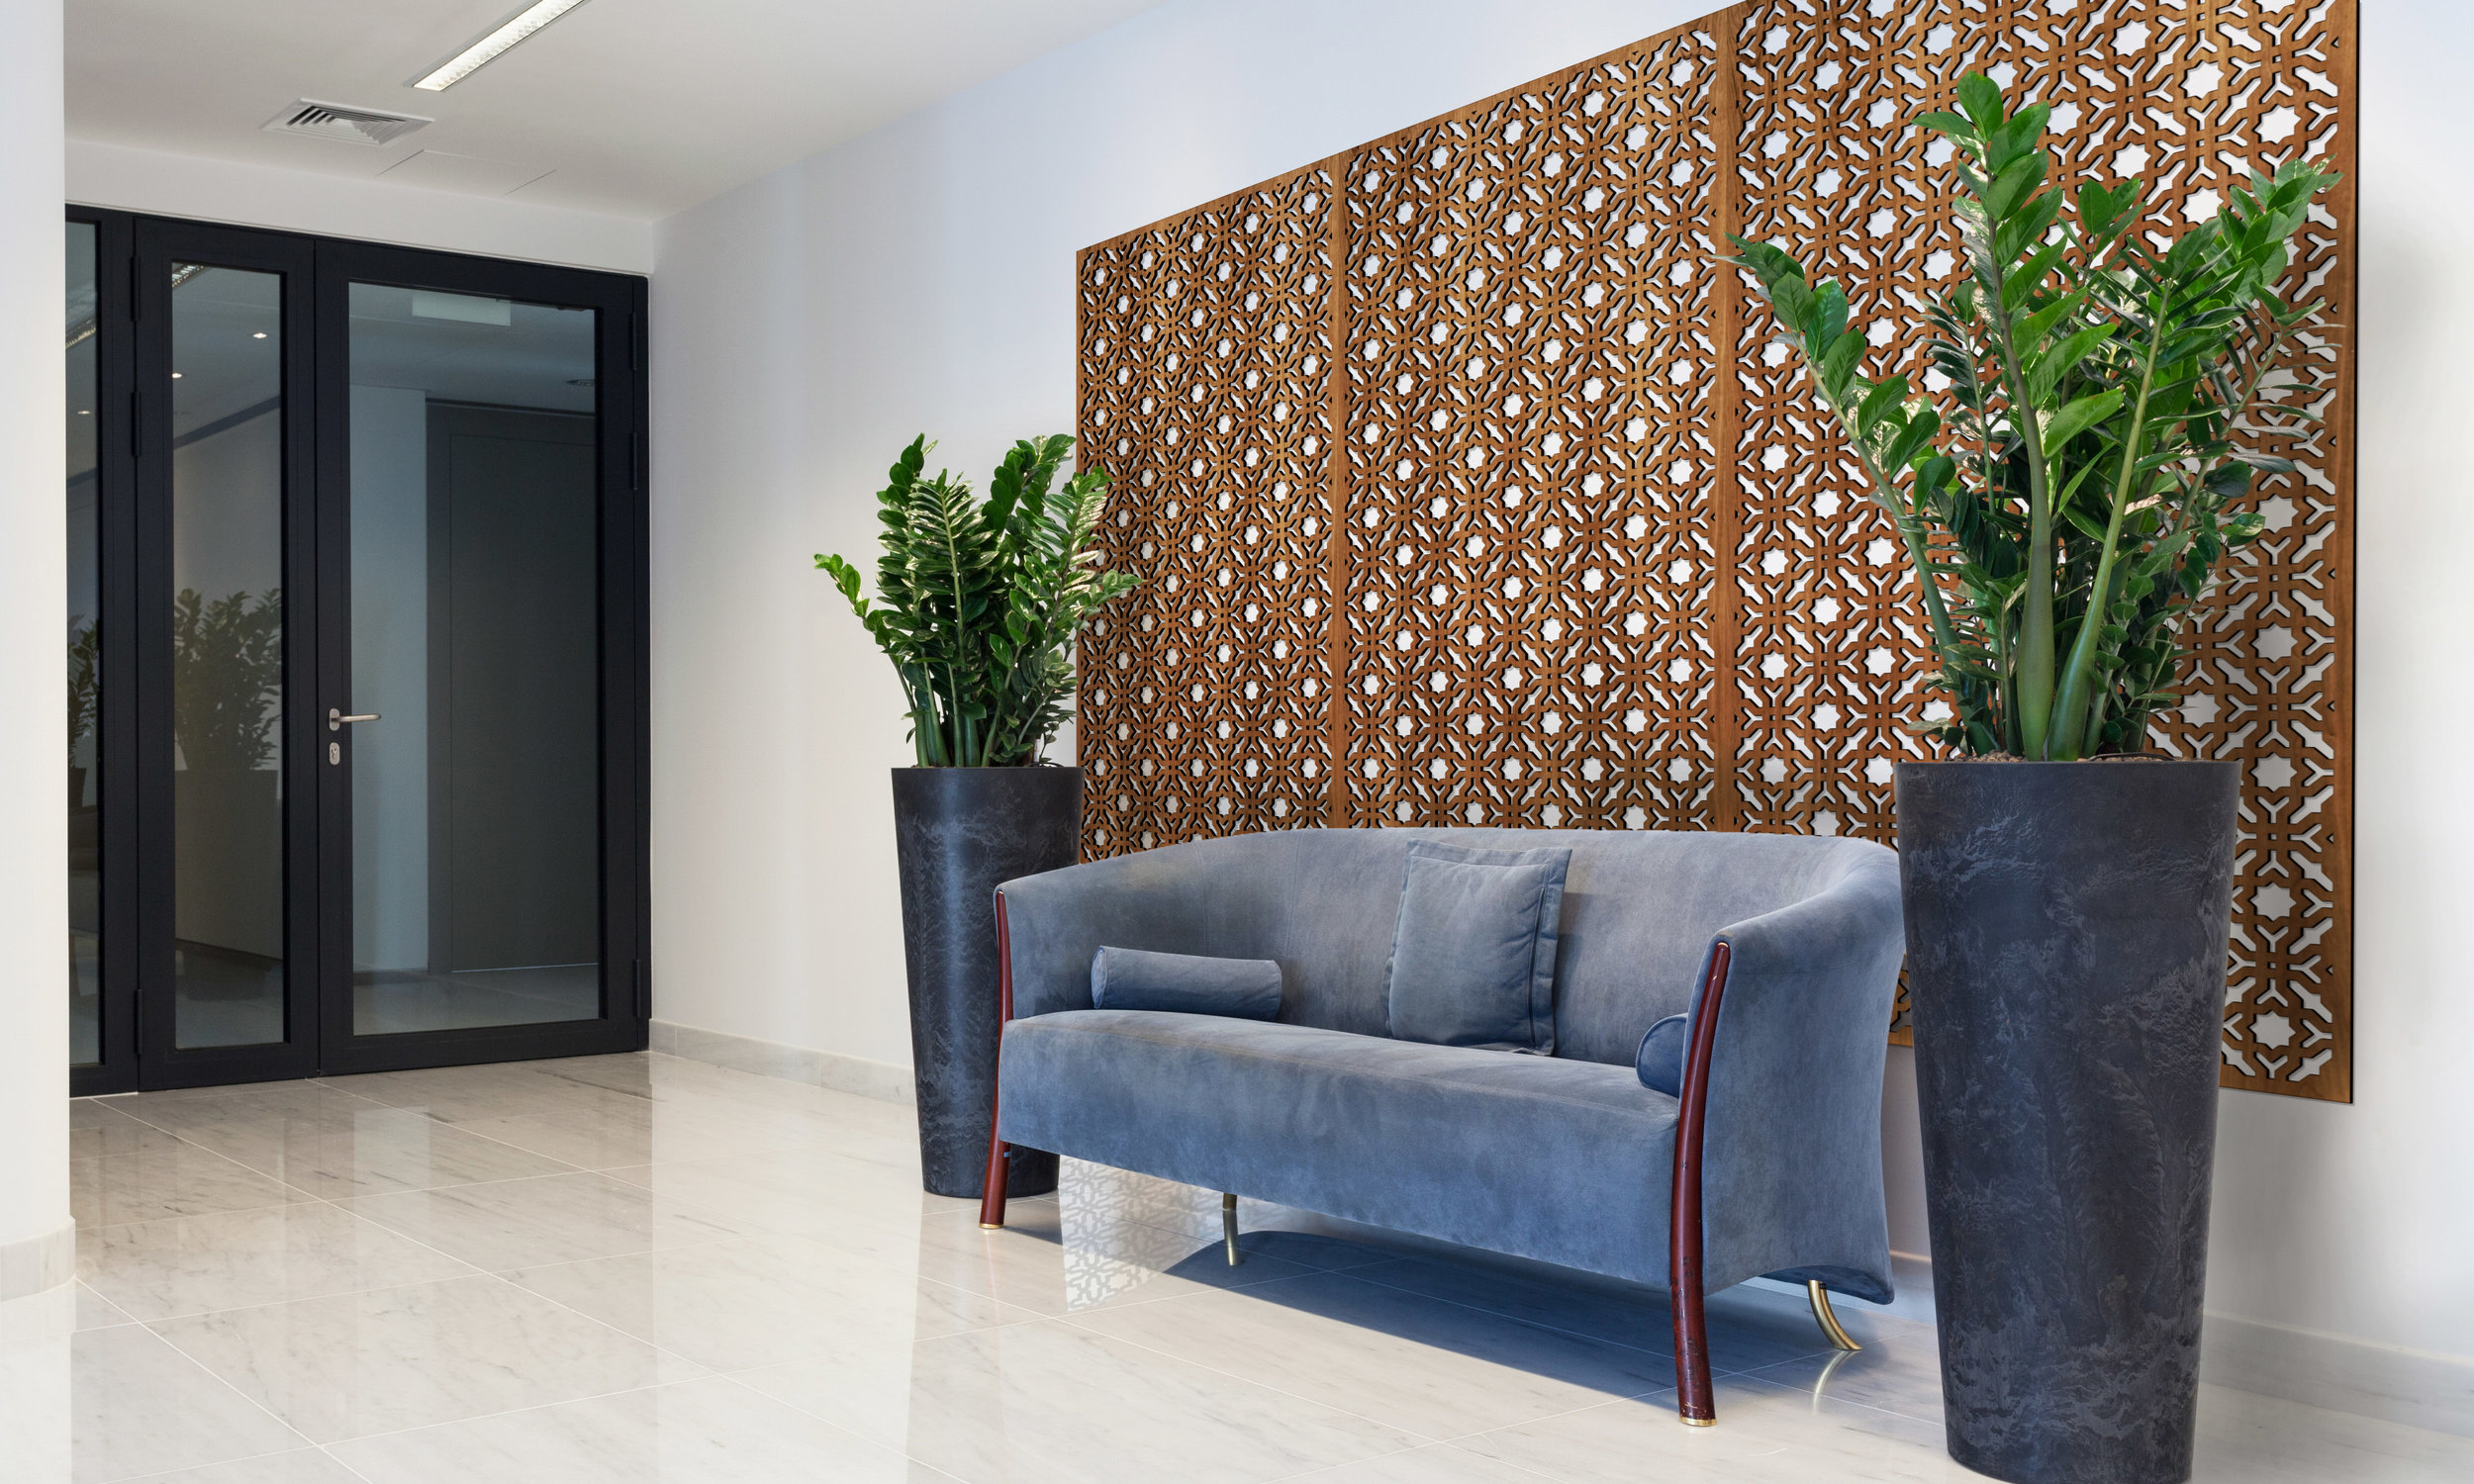 Installation Rendering A   Wiseman Star decorative office wall panel - shown in cherry